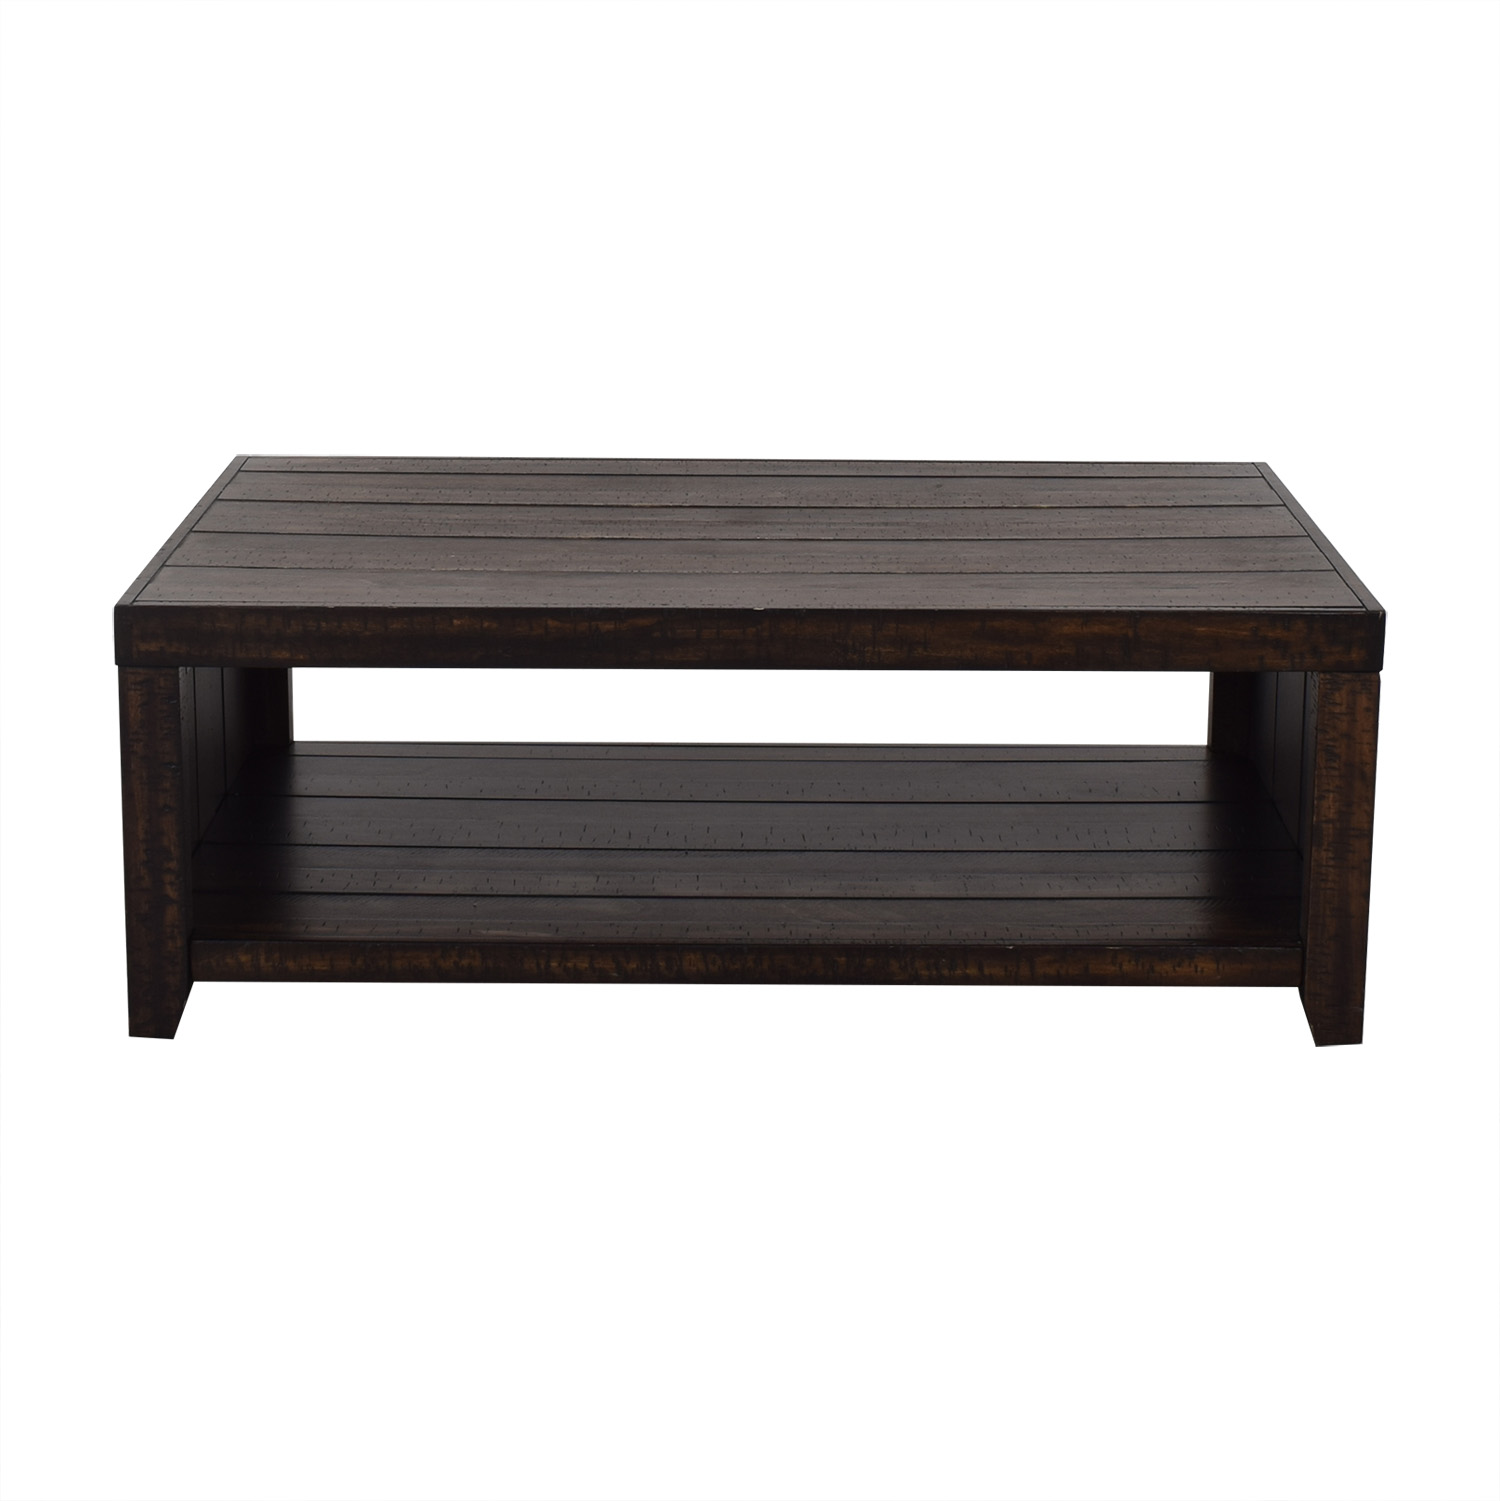 West Elm West Elm Frame Coffee Table nyc